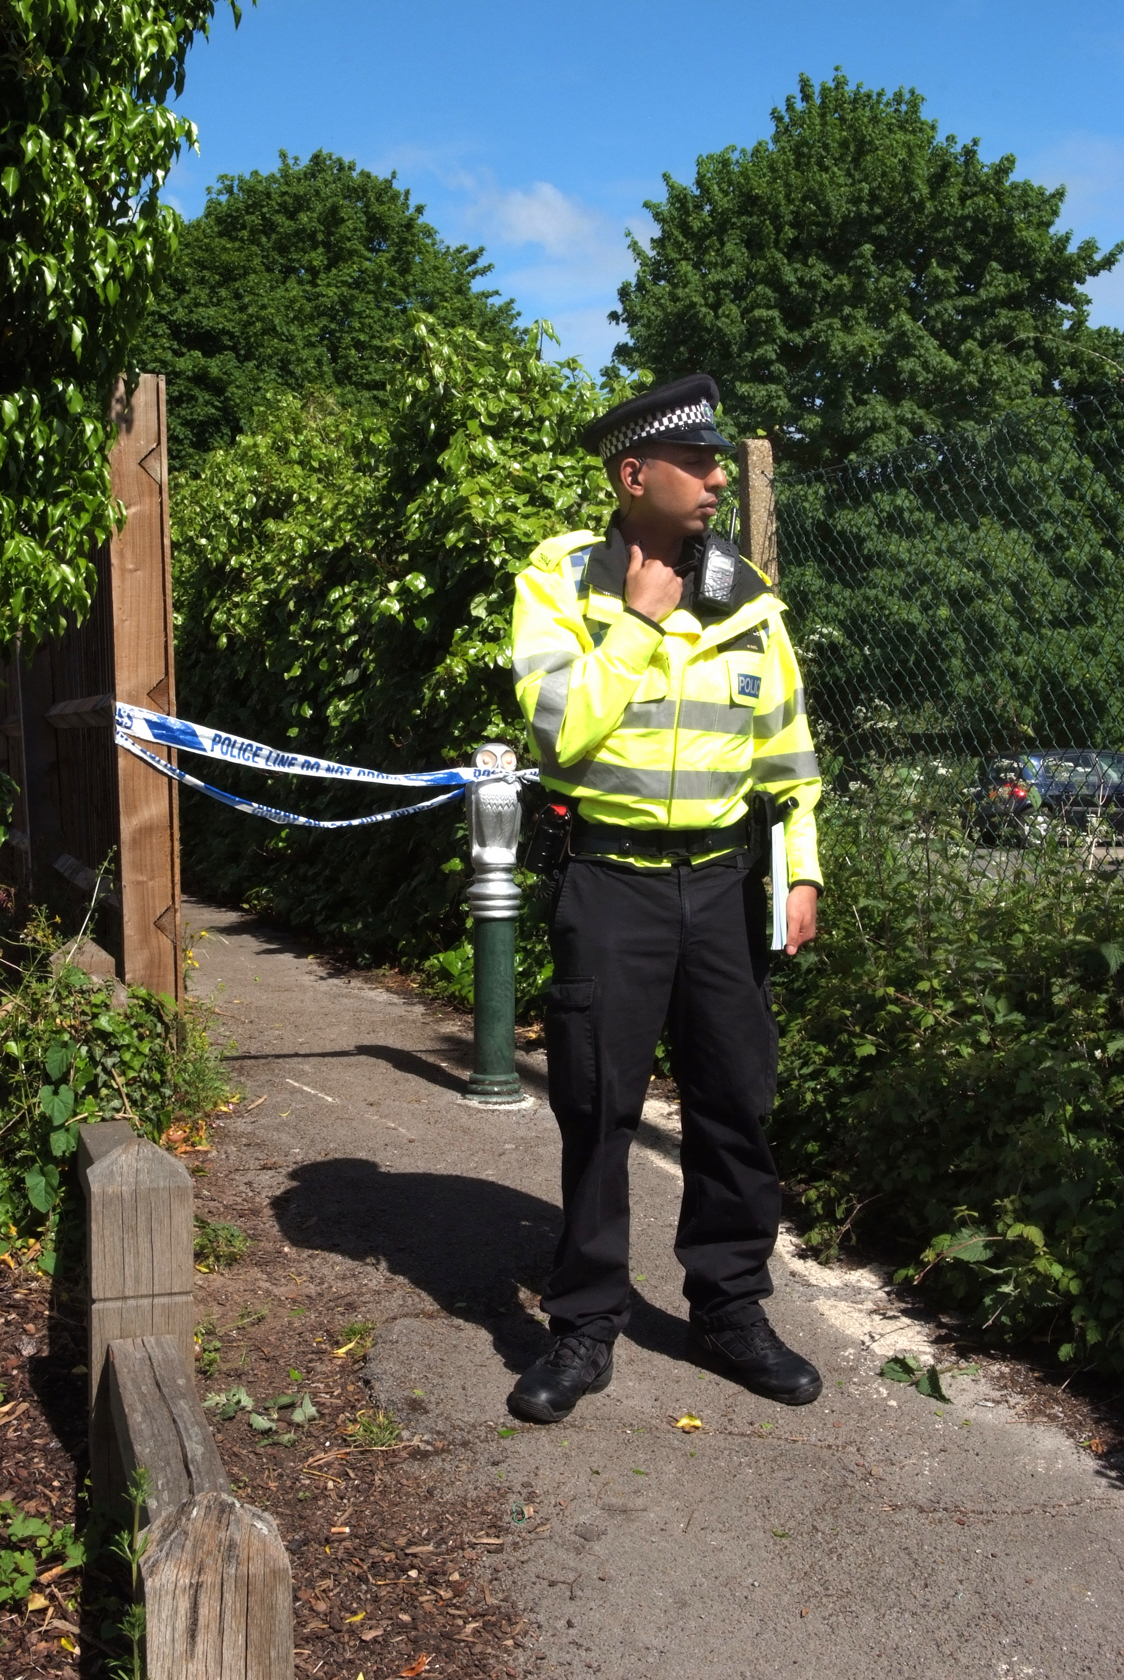 Wycombe shooting: Boy, 16, released on bail